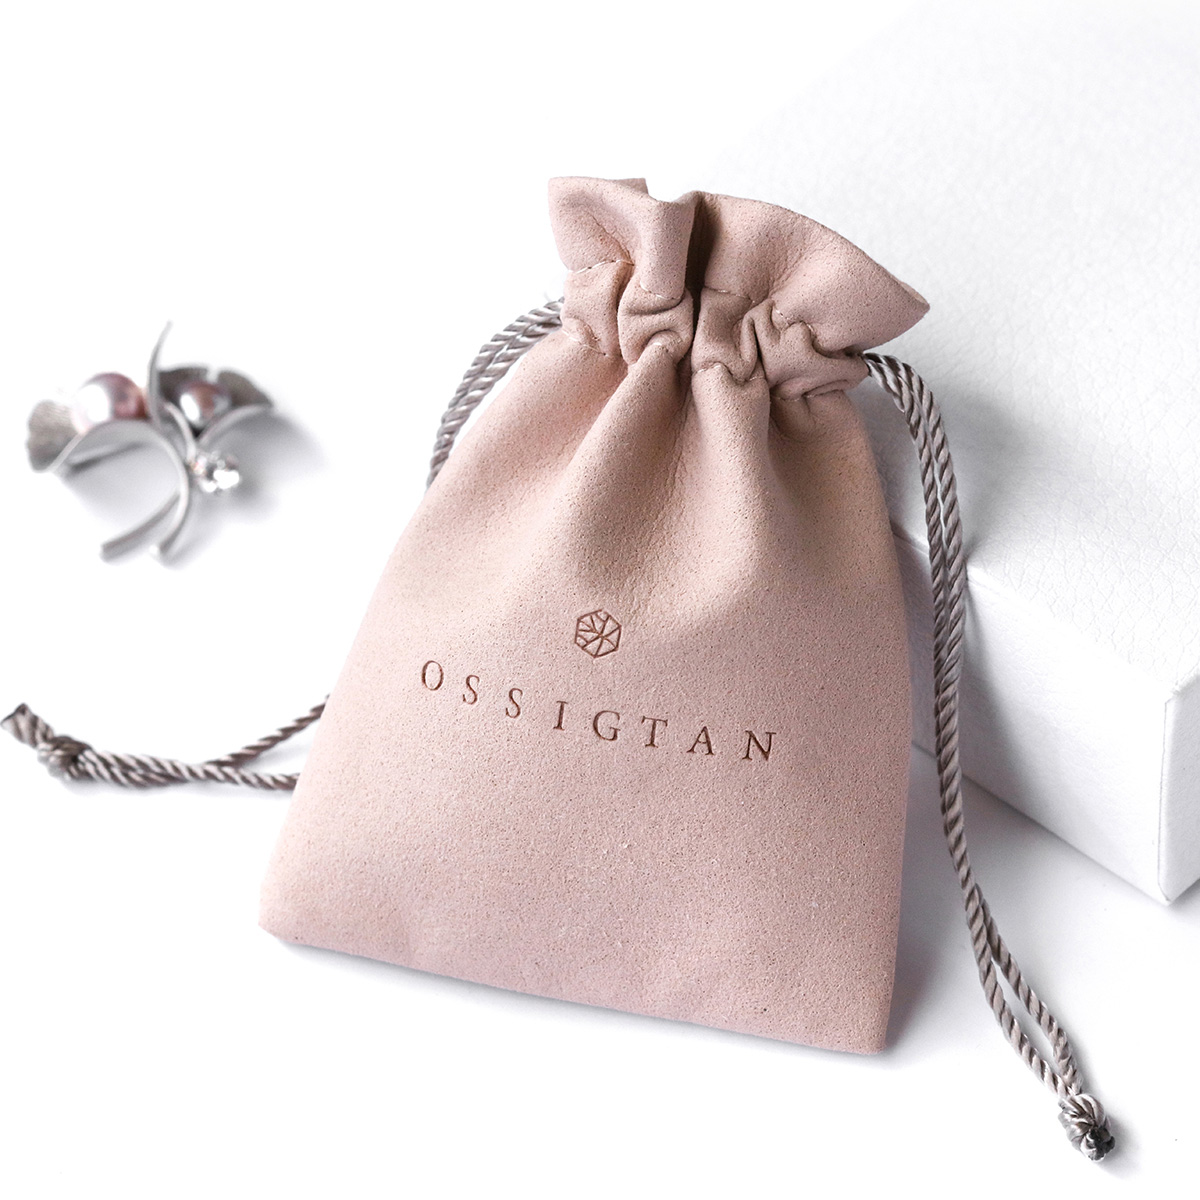 PandaSew 8*13cm Custom Microfiber Jewelry Packaging Bag drawstring Pouch with logo, Pink or customized color